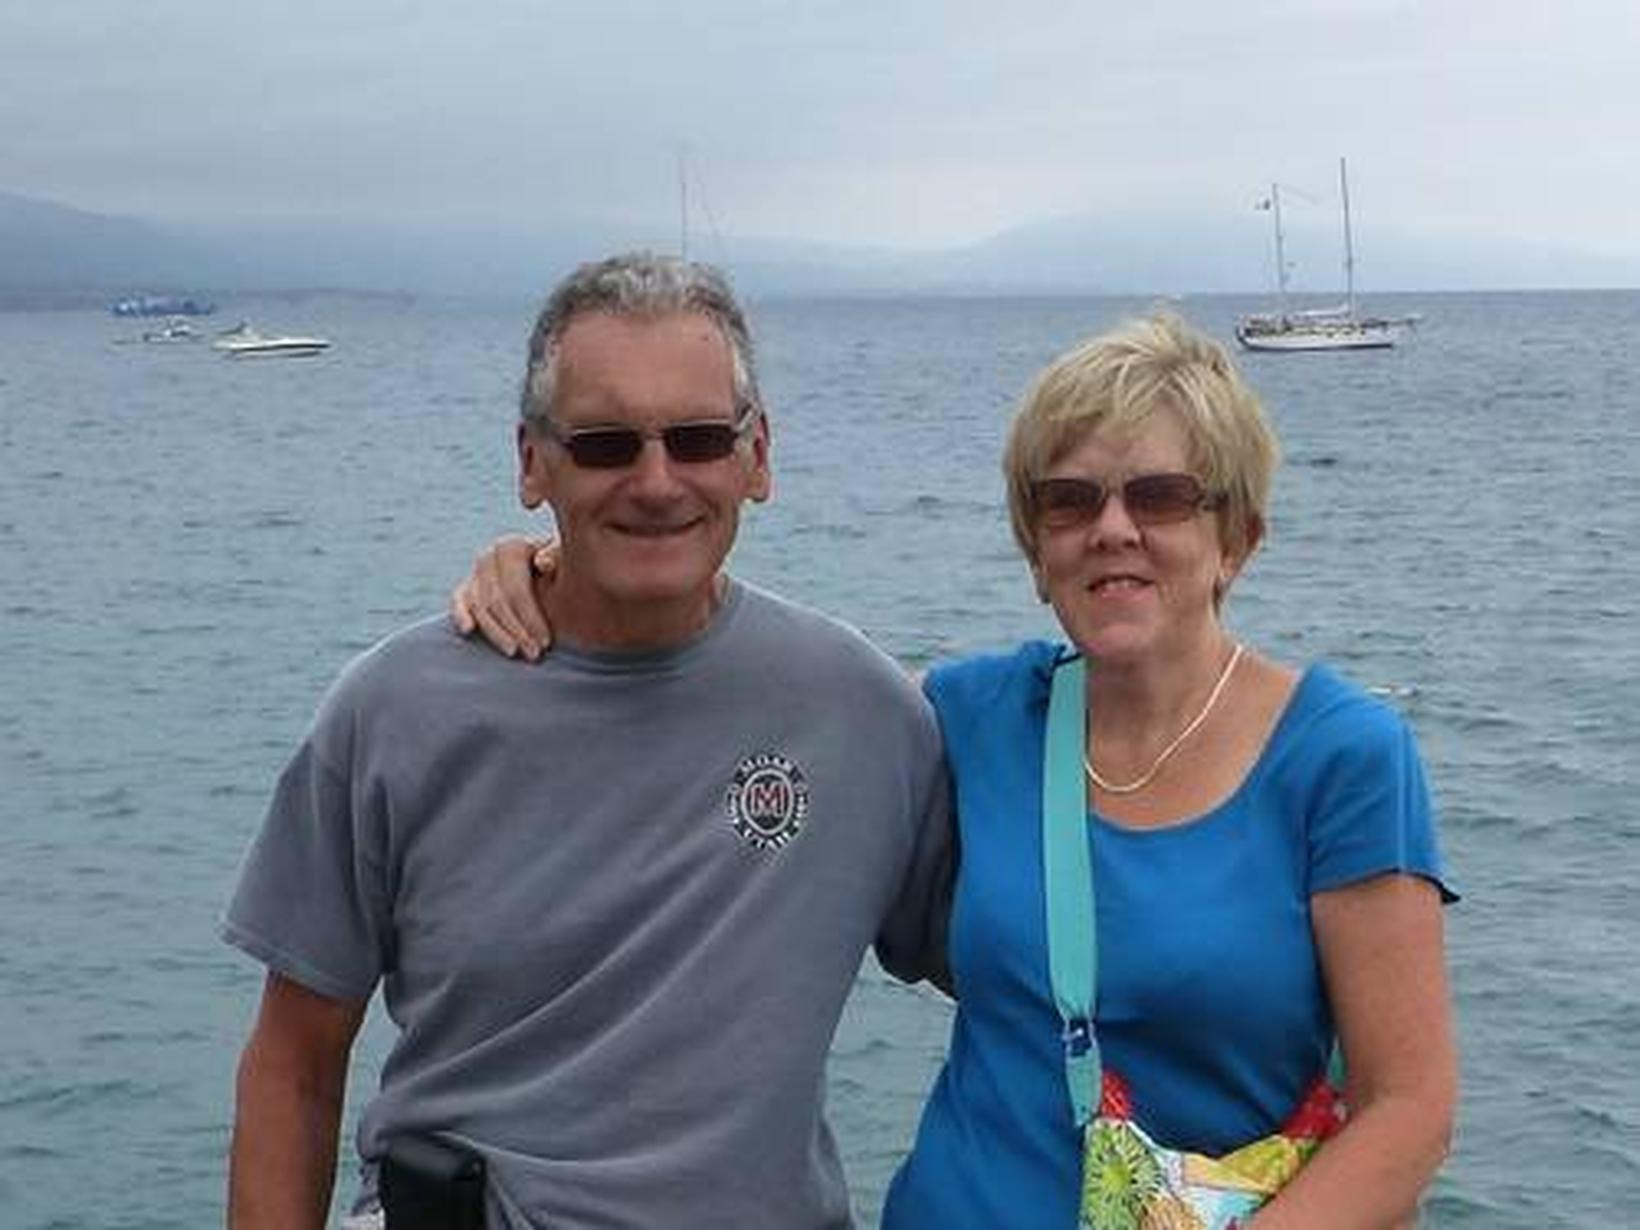 Peter & Sheila from London, United Kingdom